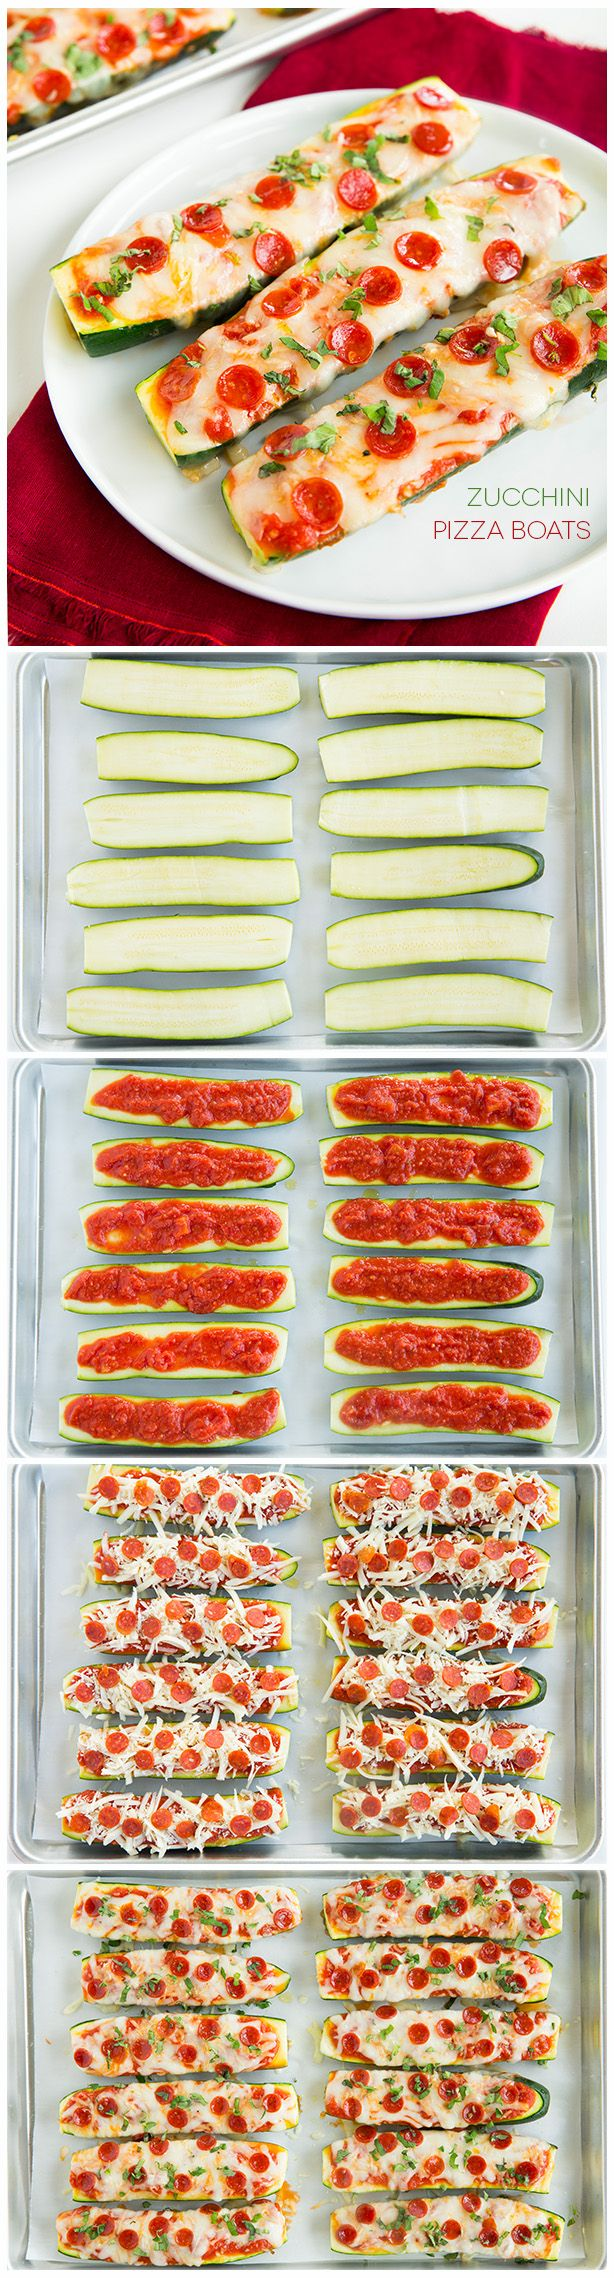 Zucchini Pizza Boats - they are INCREDIBLY good and only take about 10 minutes prep!! My whole family loved them (picky eaters included).Zucchini Recipe, Healthy Food Prep, Pizza Zucchini Boat, Zucchini Pizza Boats, Low Carb Meal Prep, Minute Prep, 10 Minute Dinner, Healthy Meal Prep, Picky Eaters